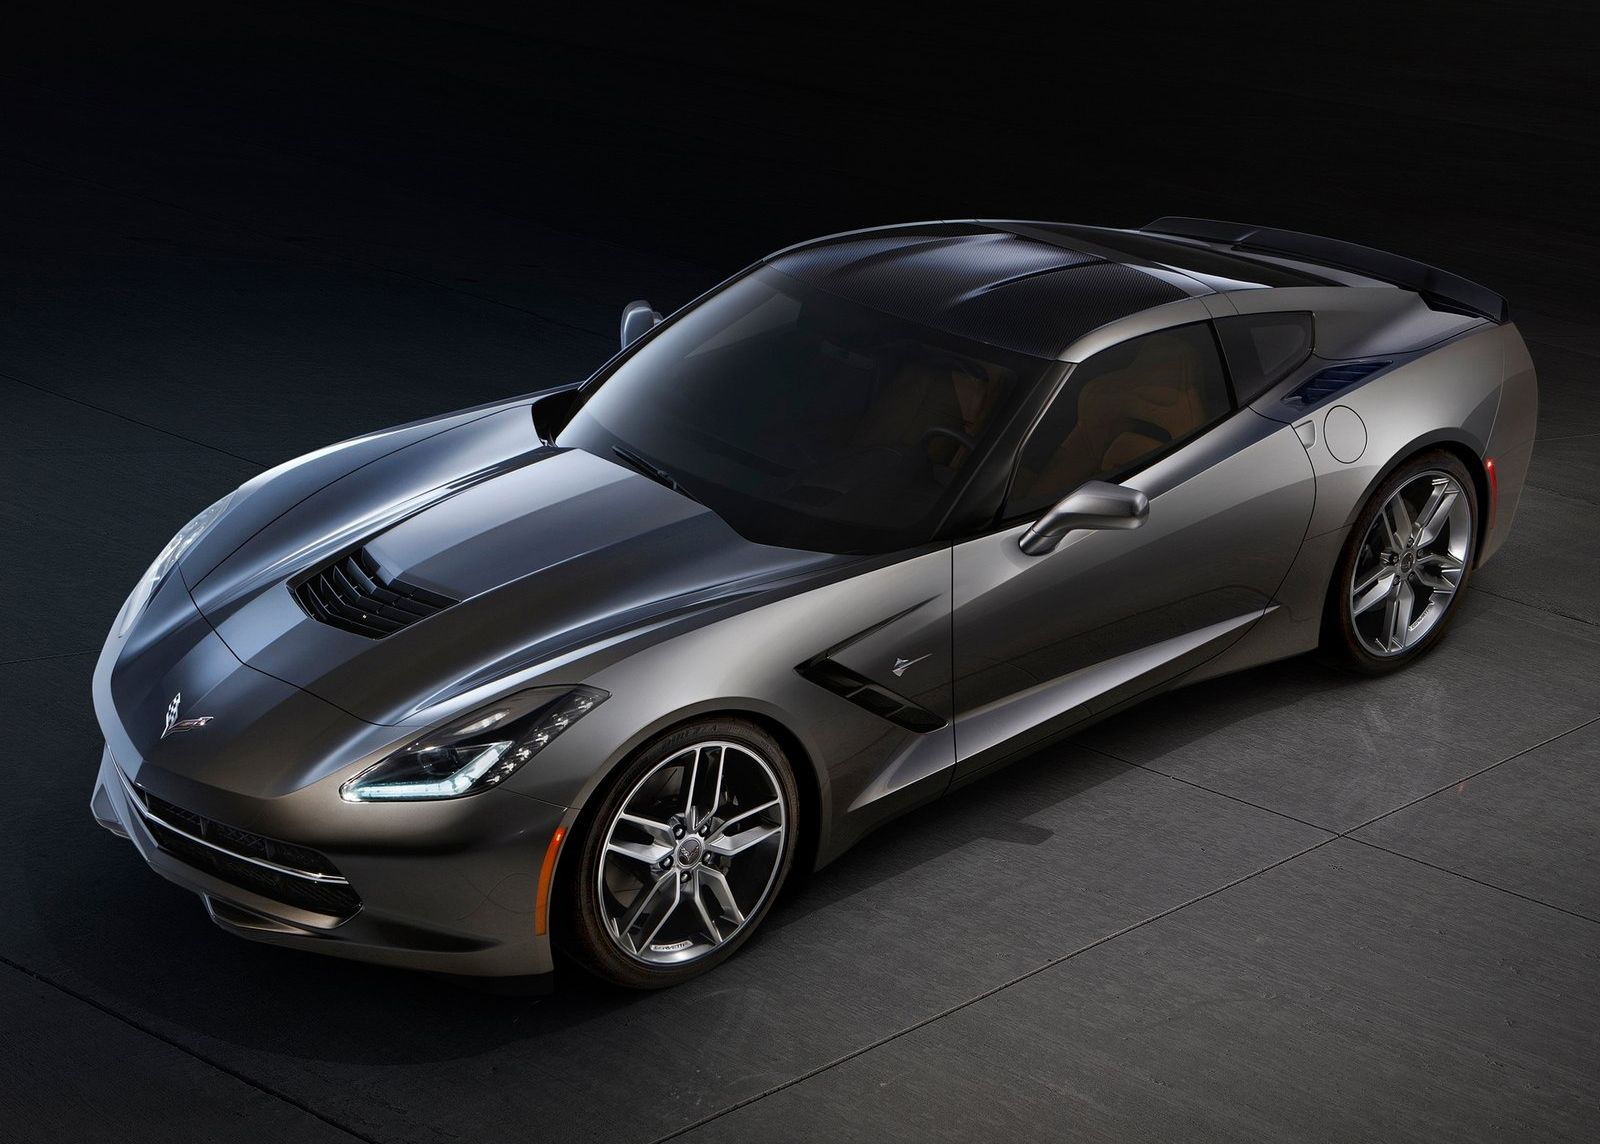 Chevrolet corvette c2 sting ray reviews prices ratings with - Chevrolet Has Now Unveiled Its Seventh Generation Of Corvettes The 2014 Corvette Stingray Was Revealed This Week At The Detroit Auto Show